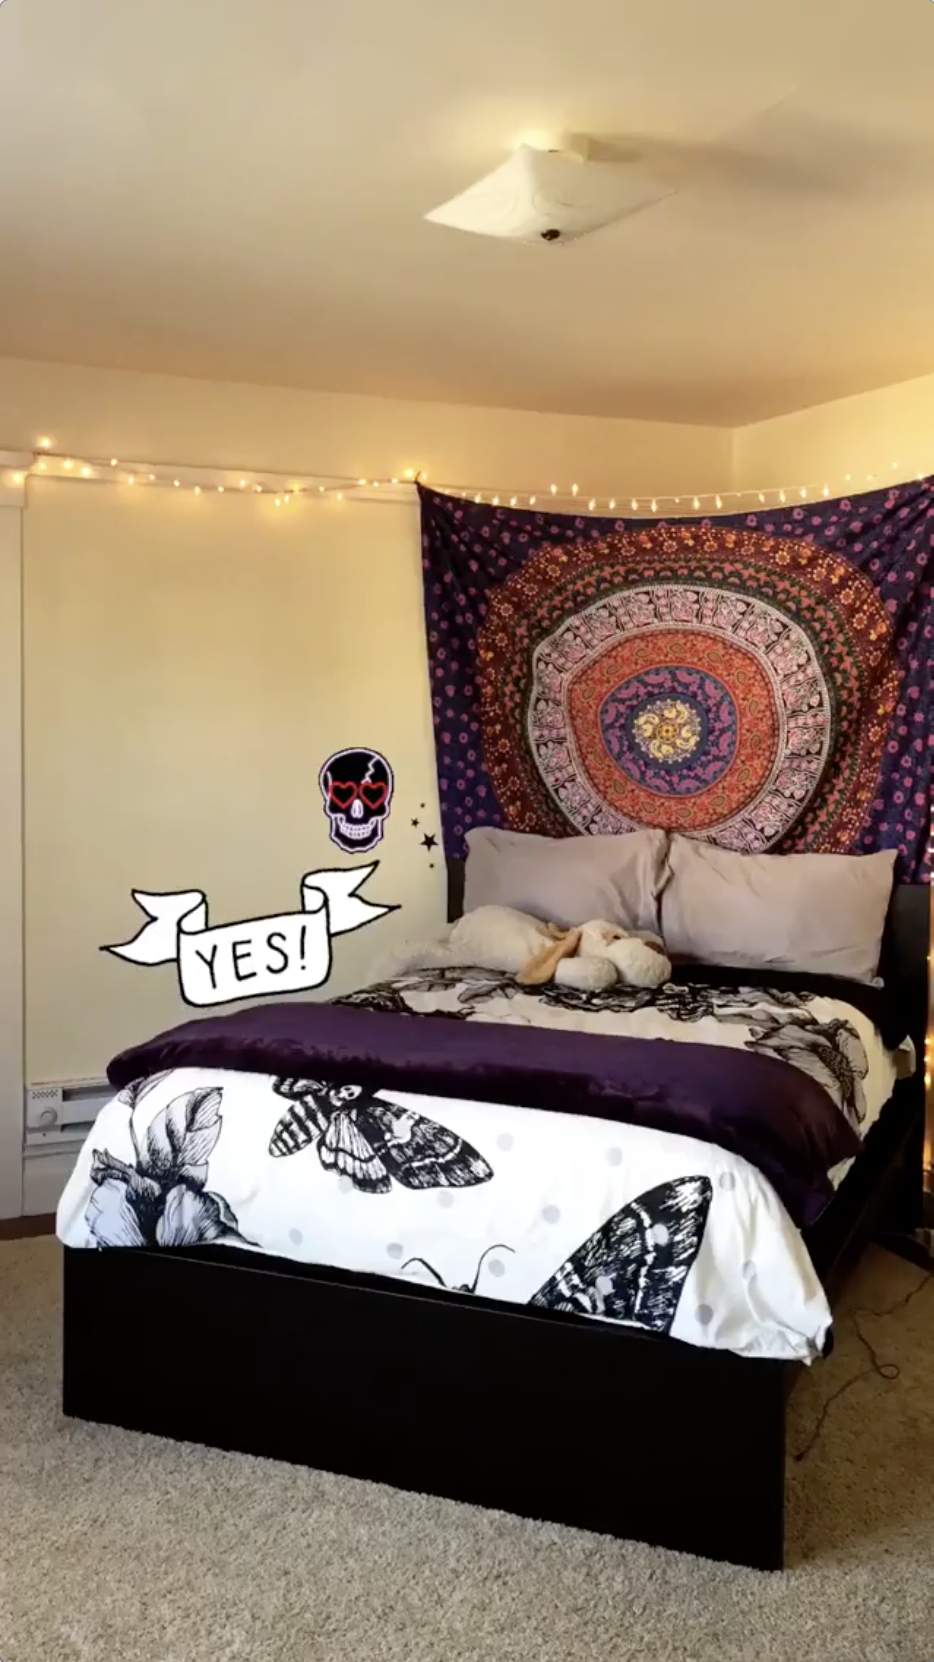 Lydia's room. No, that is definitely not a stuffed animal…